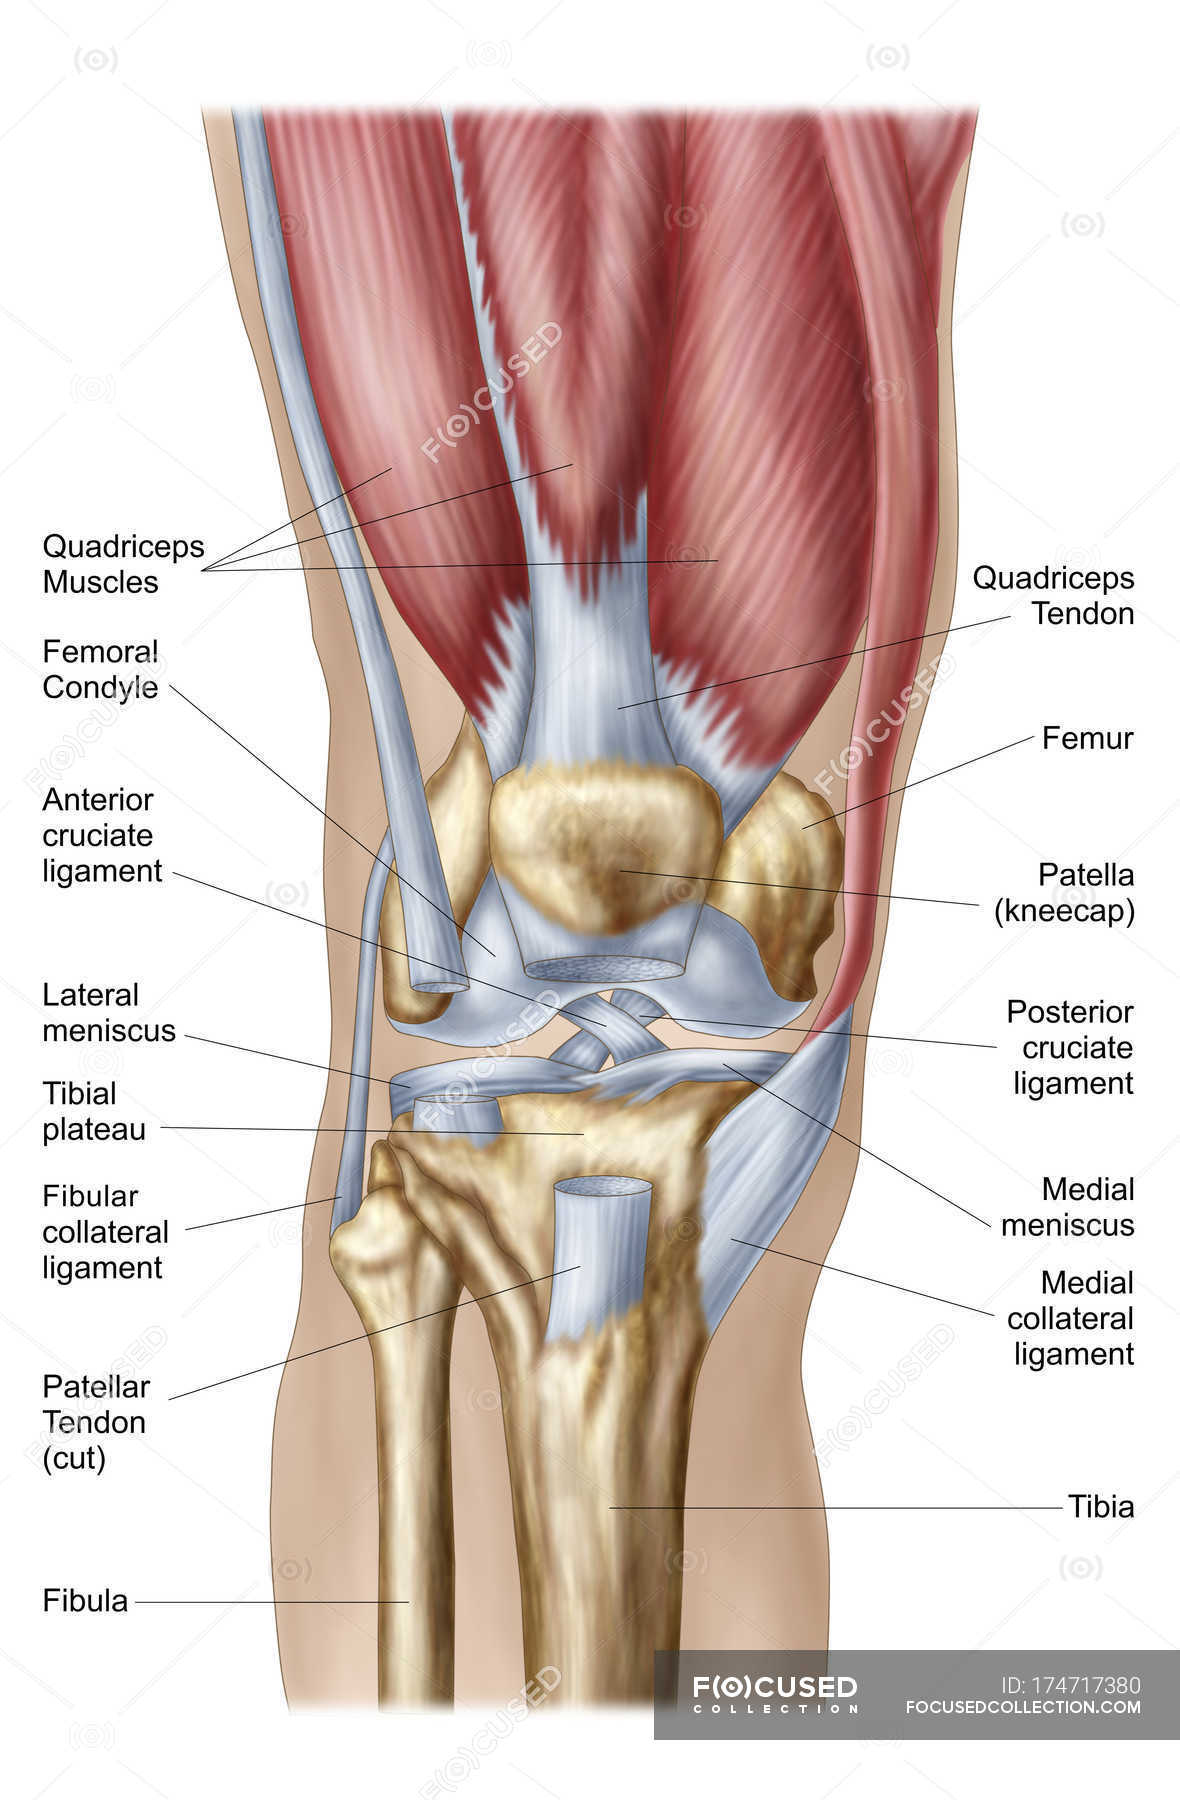 Anatomy of human knee joint with labels — Stock Photo | #174717380